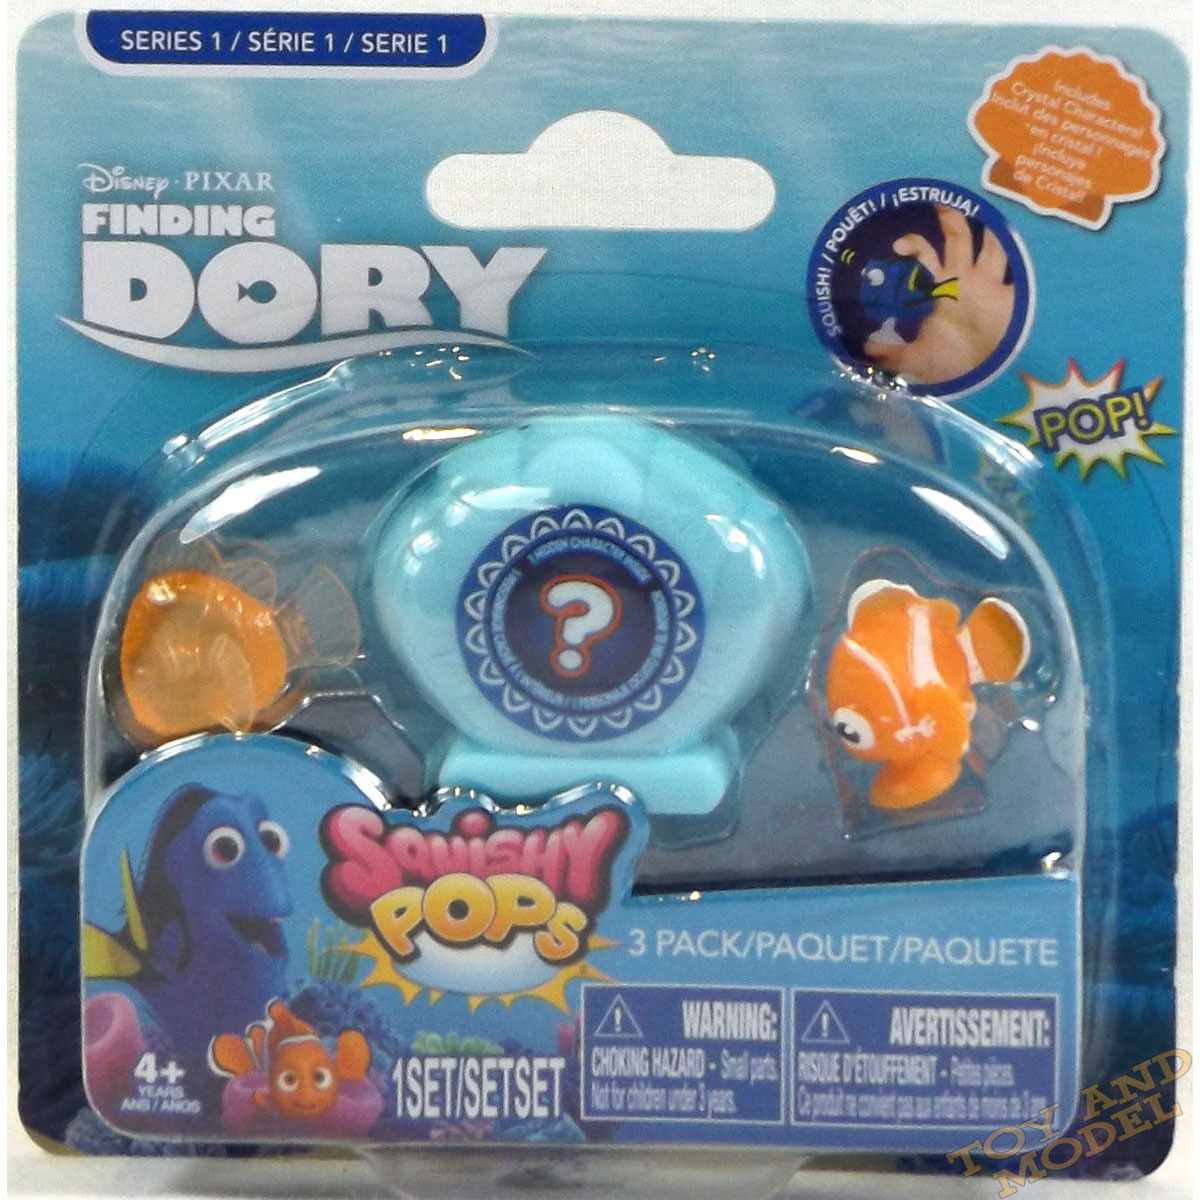 Finding Dory Squishy Pops 3 Pack on Card (includes 1 Shell) UK Seller 4 Yrs+NEW eBay